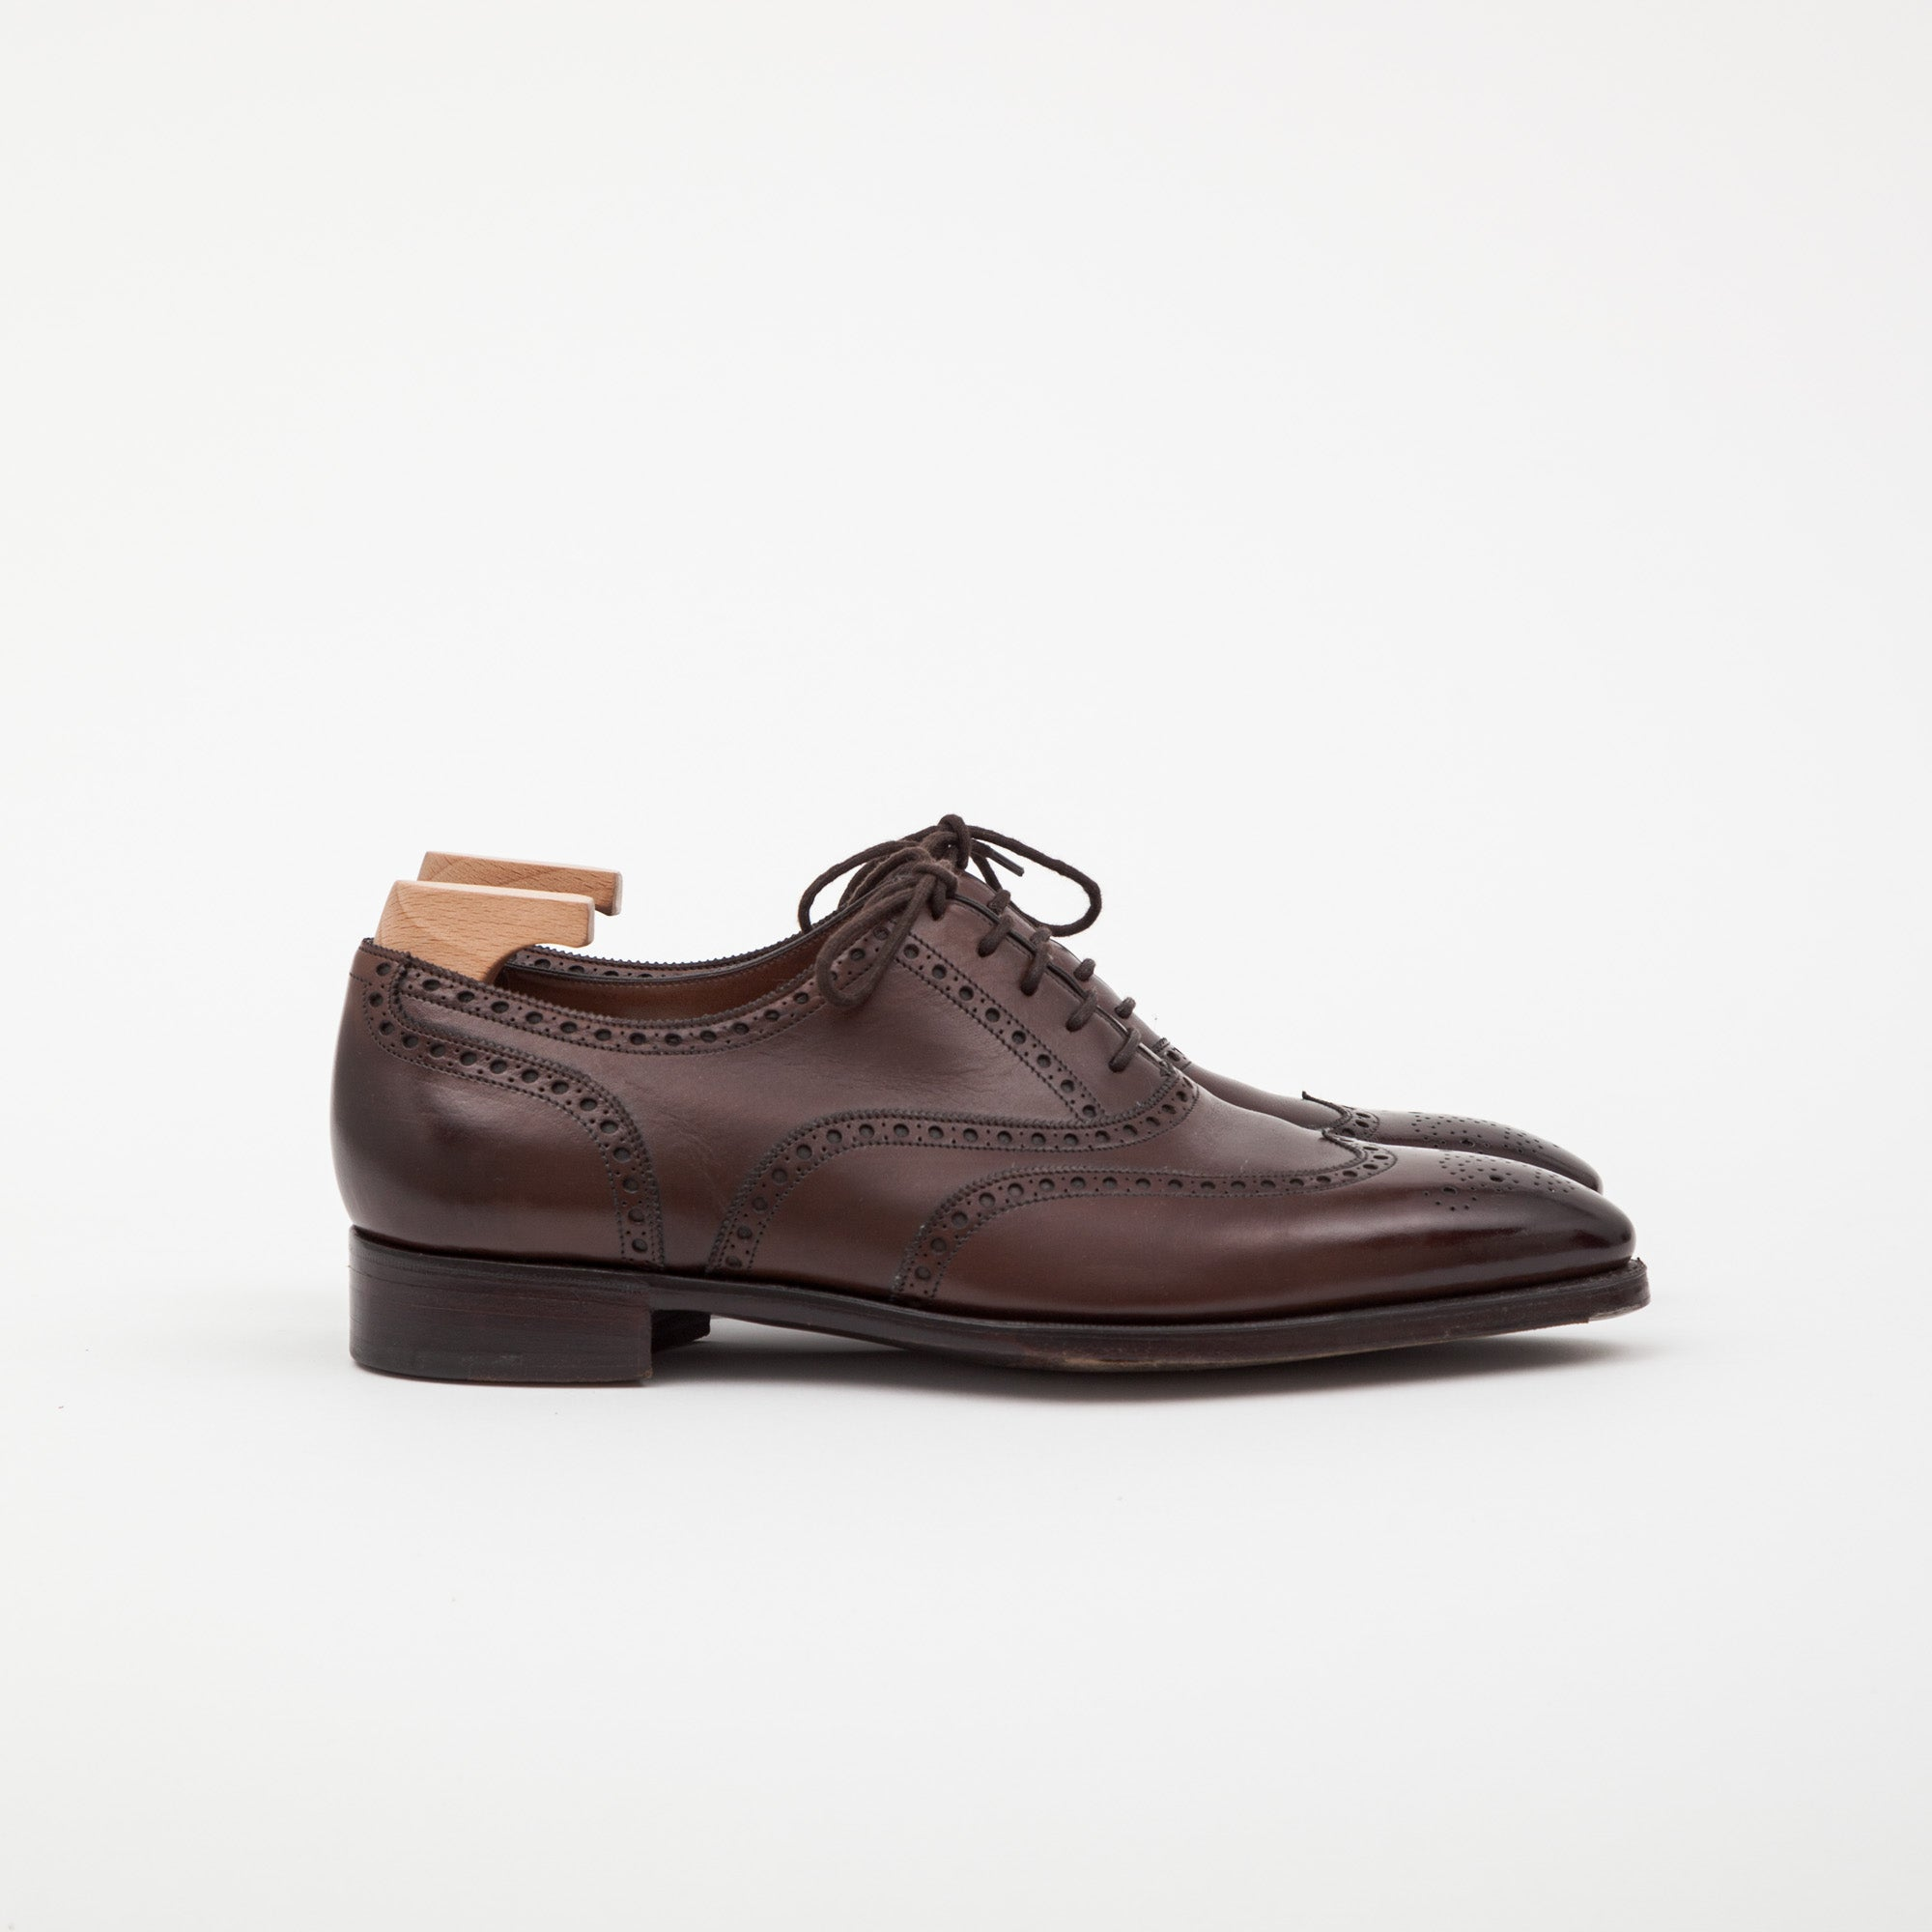 Gaziano & Girling Leather Brogue Shoe